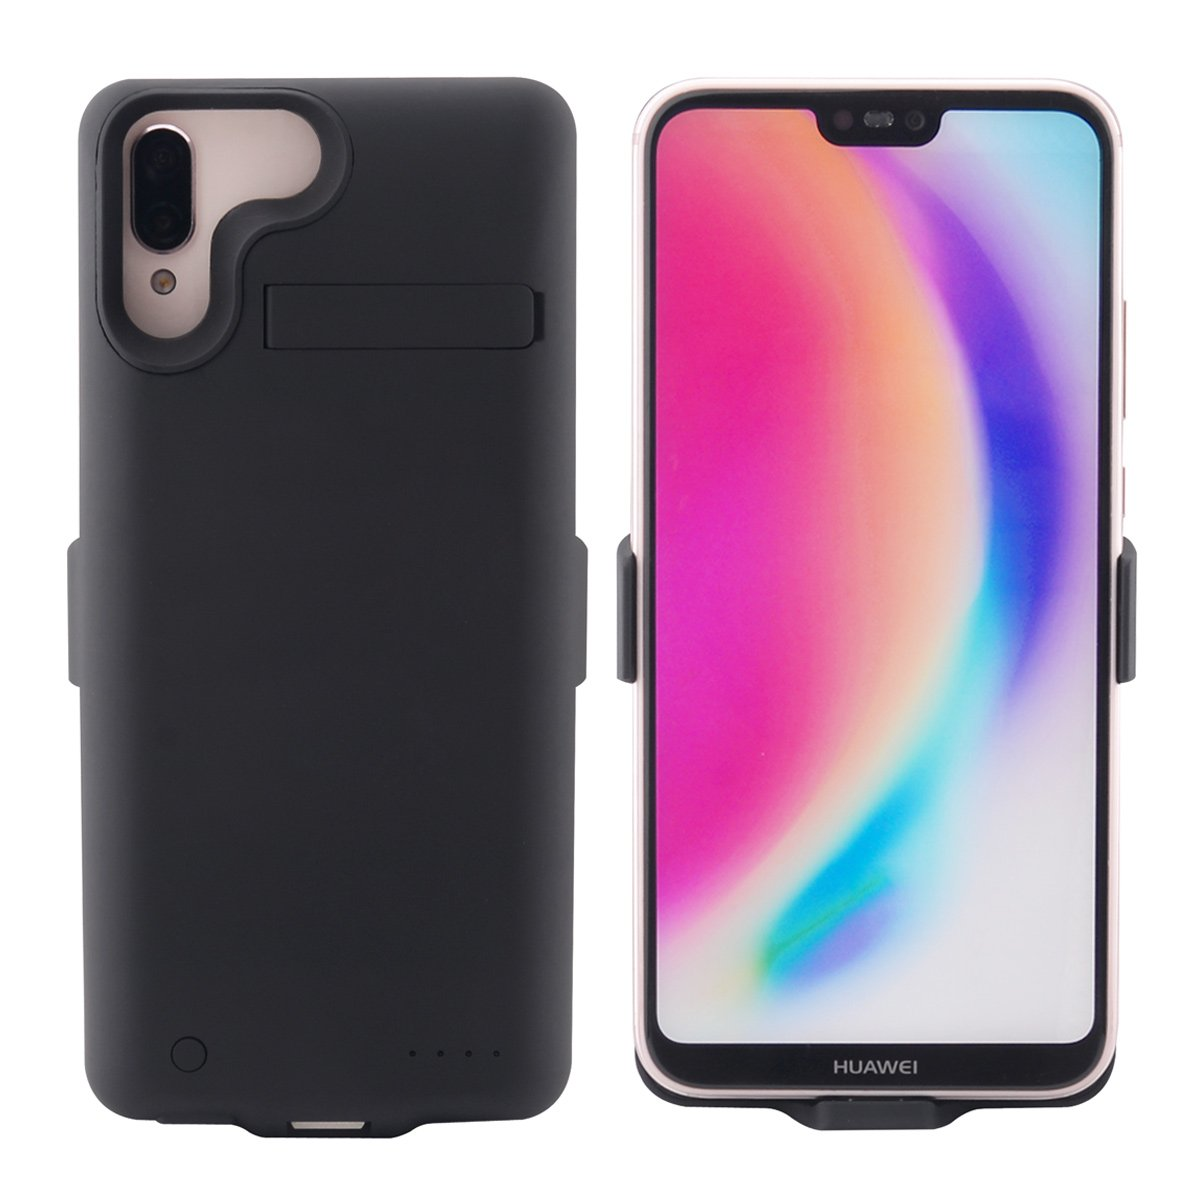 AICEDA Huawei Nova 3i Rechargeable Battery Case Charger Cover, Shake Dust Dirt Proof Case Compatible with Huawei Nova 3i - Black